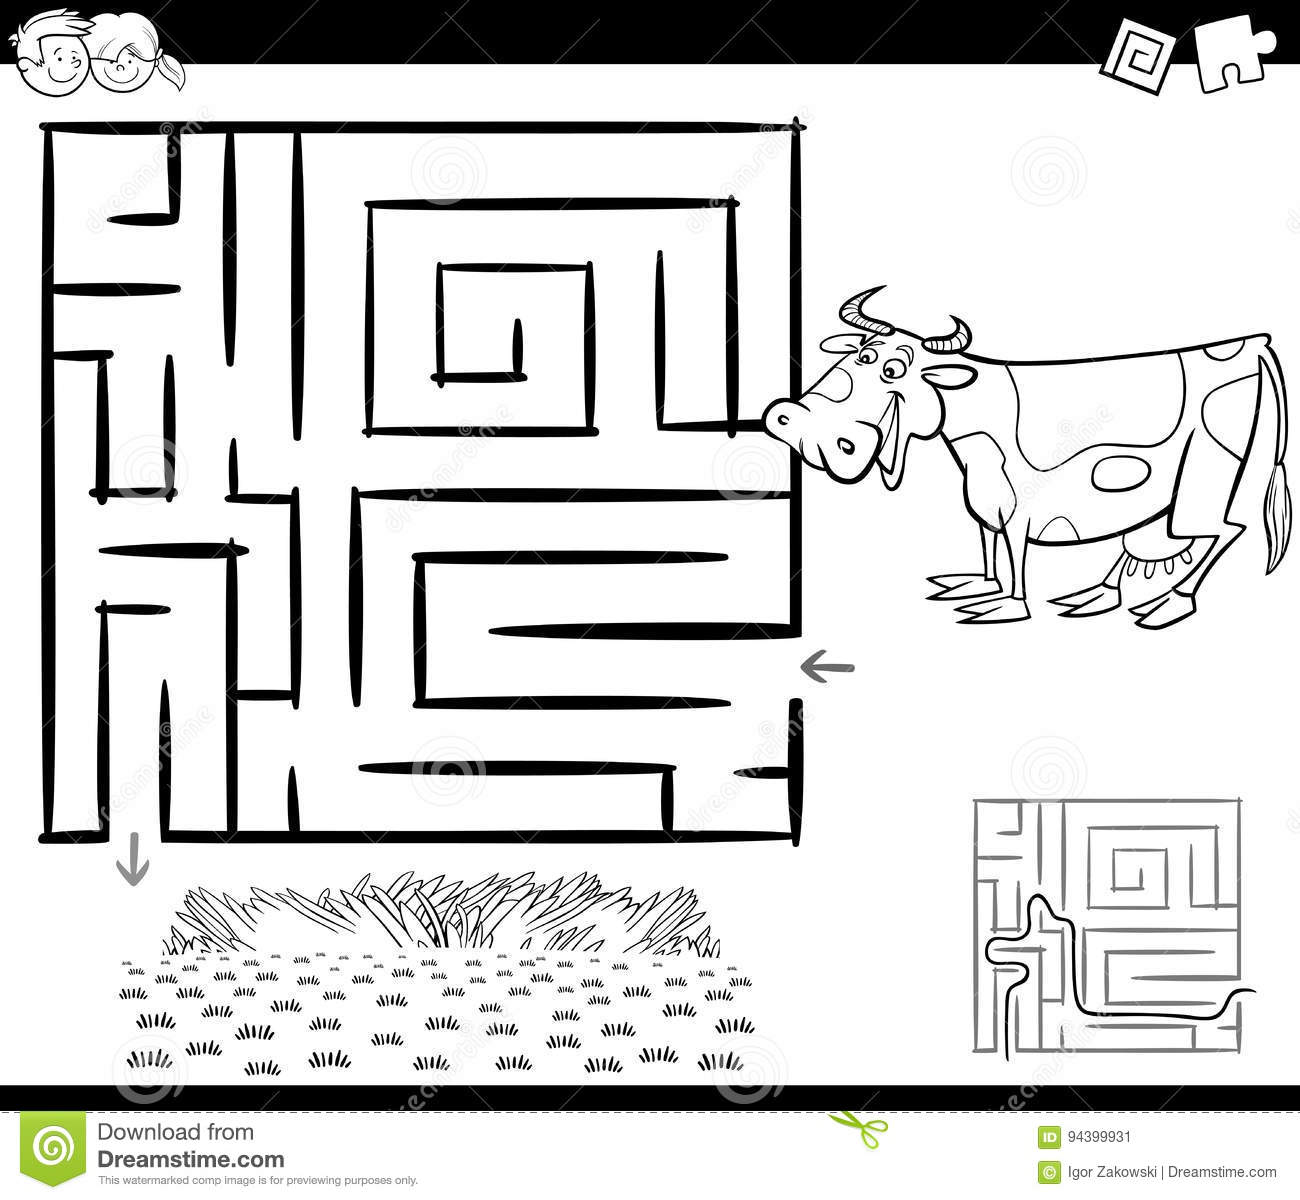 Maze with cow for coloring stock vector. Illustration of